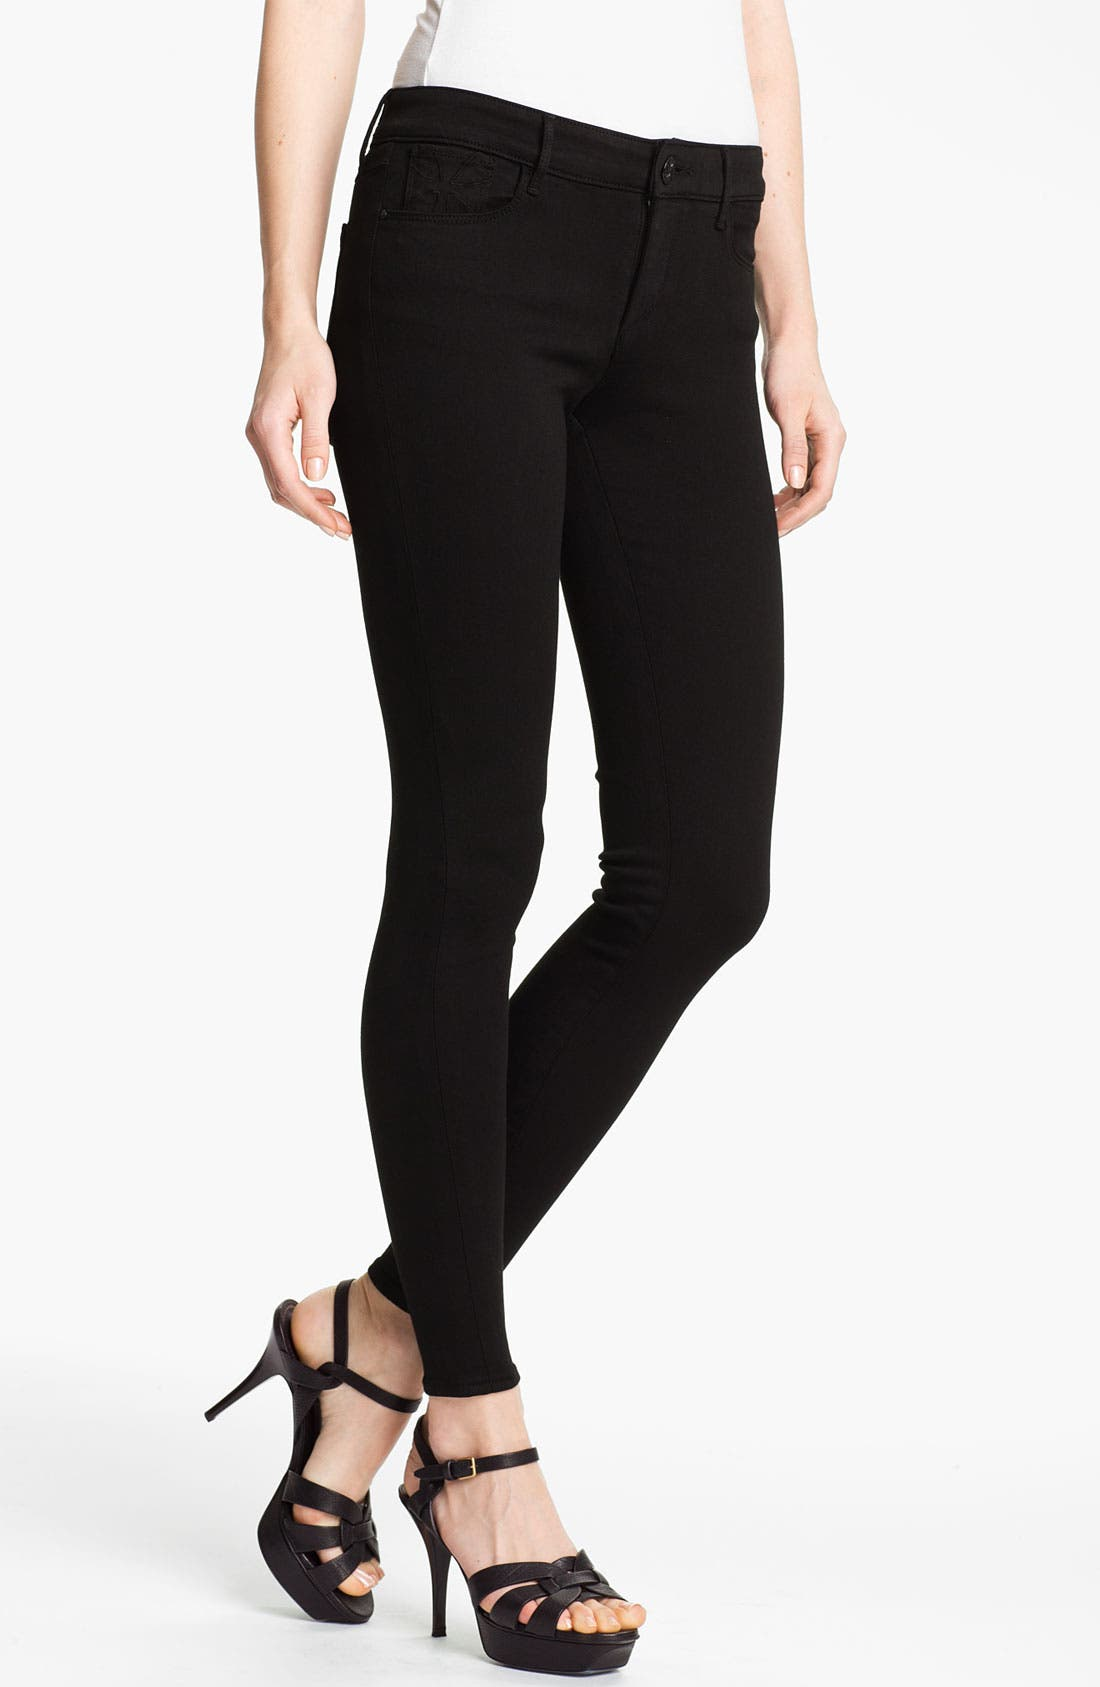 Alternate Image 1 Selected - Habitual 'Sublime Grace' High Rise Skinny Jeans